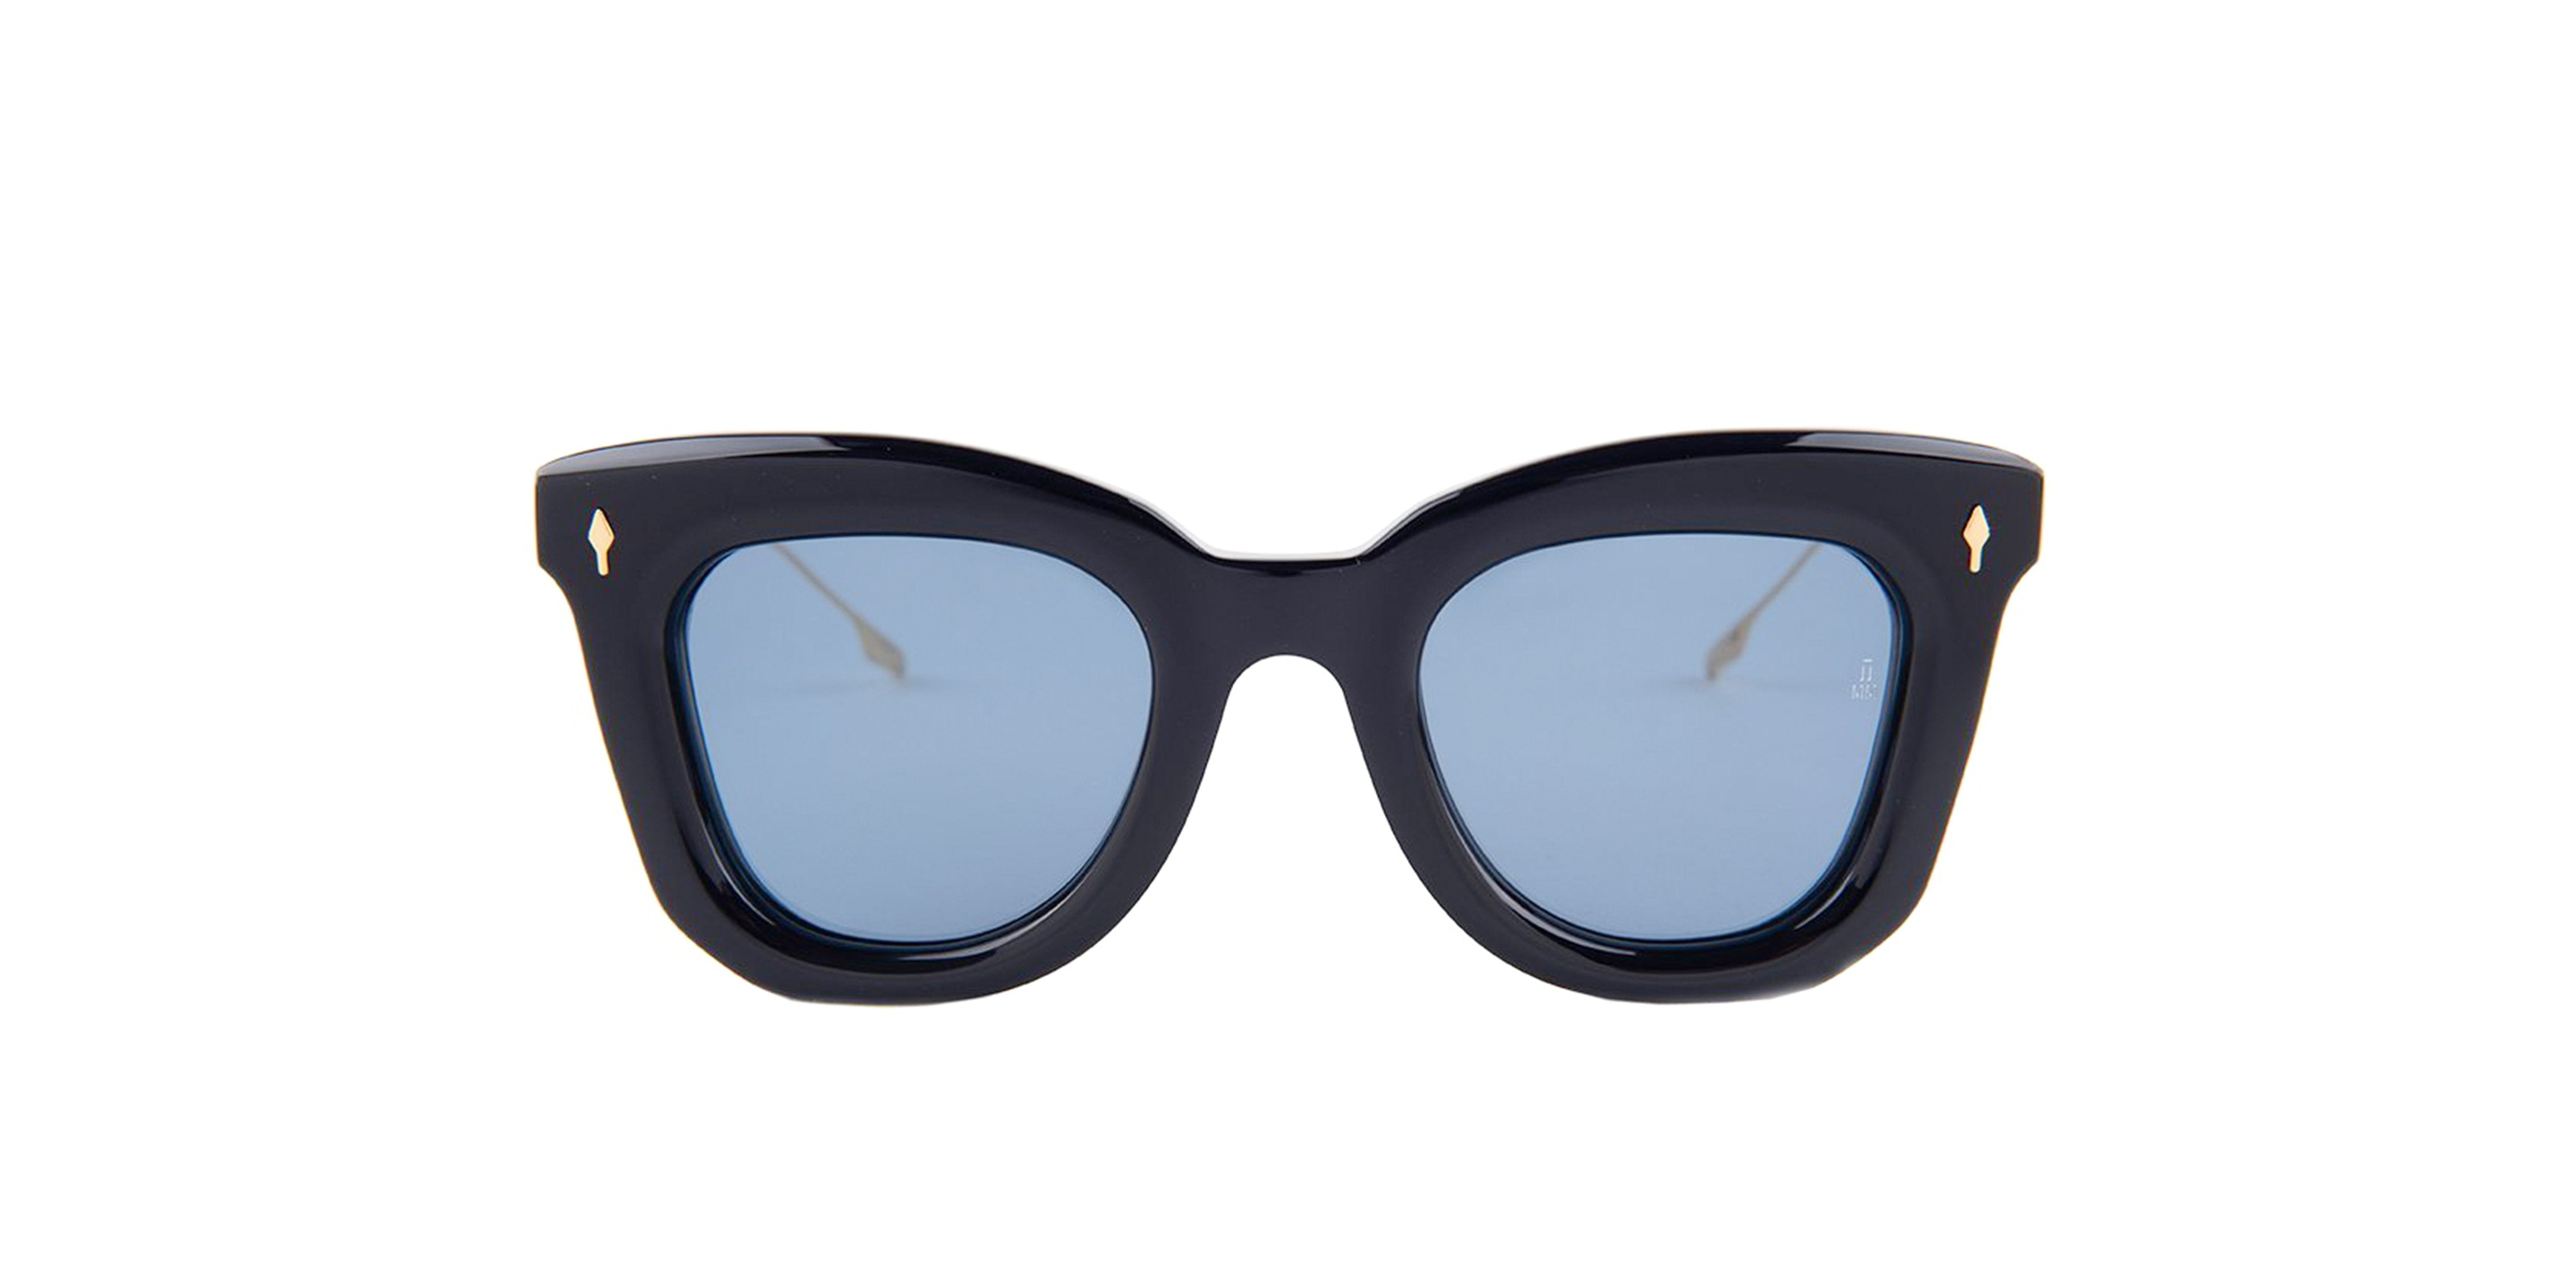 Jacques Marie Mage - Fascination Blue/Blue Rectangular Women Sunglasses - 46mm-Sunglasses-Designer Eyes